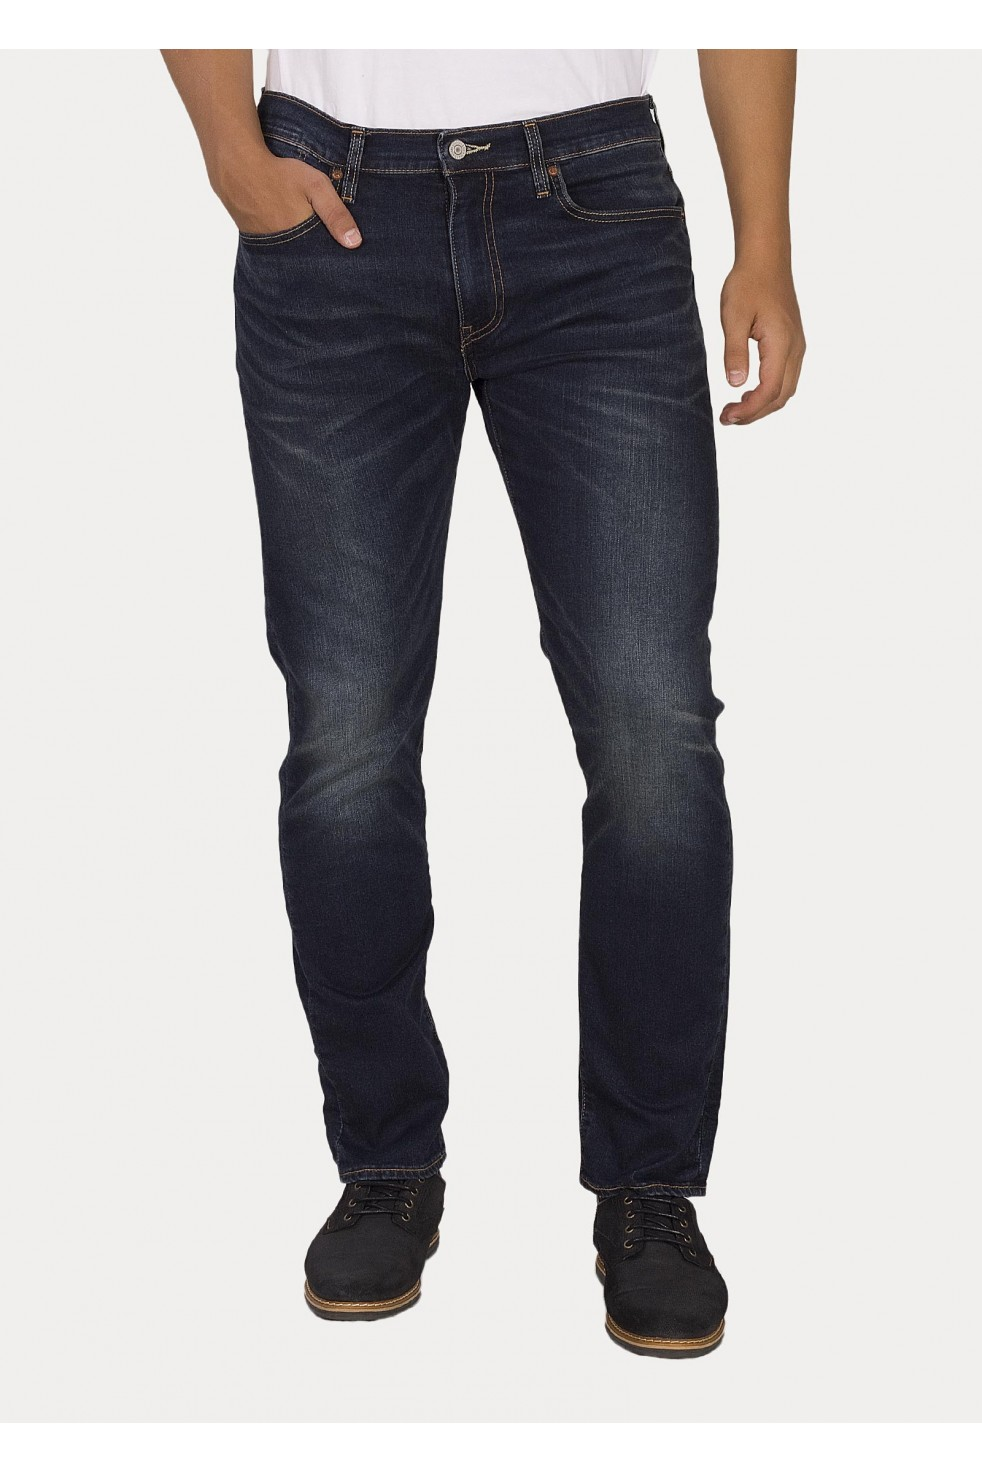 Levis Erkek Jean Pantolon 502 Regular Taper 29507-0282